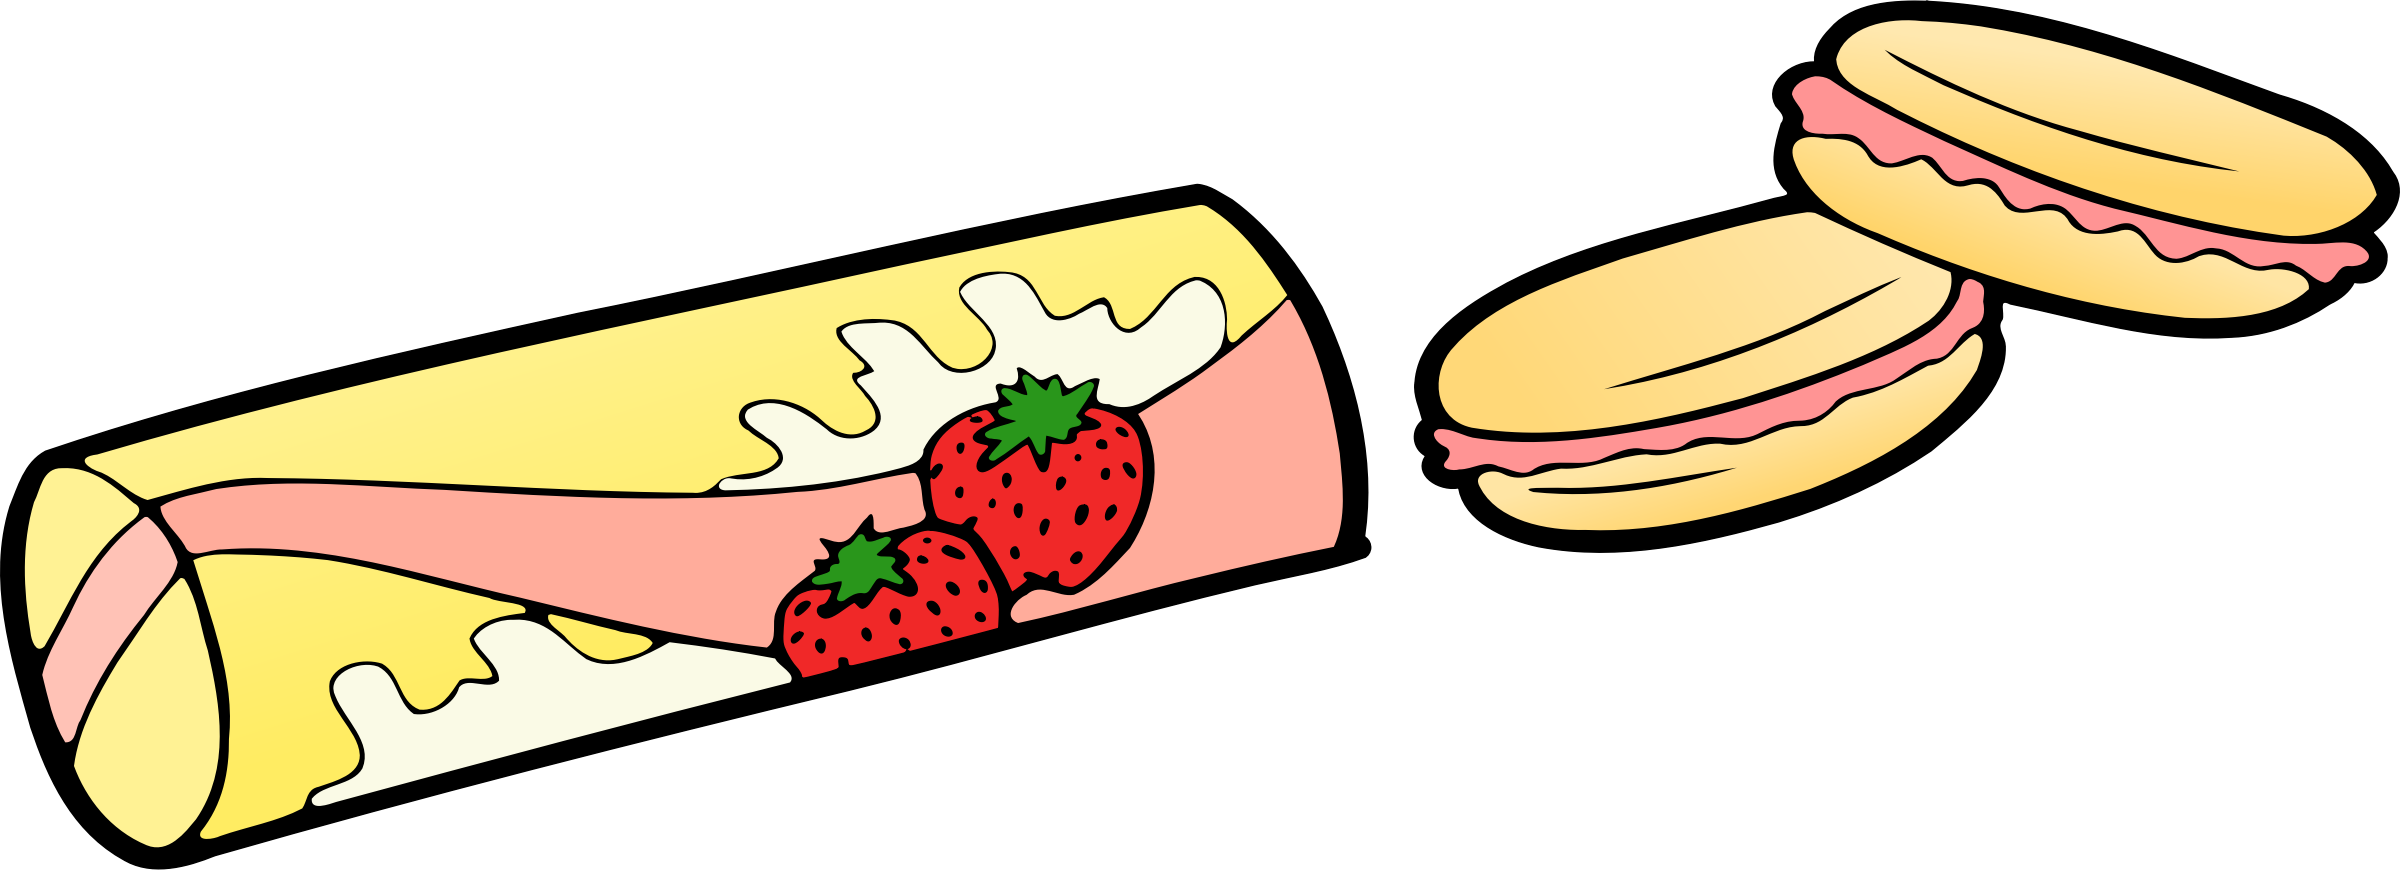 Strawberries clipart outline. Strawberry snack icons png